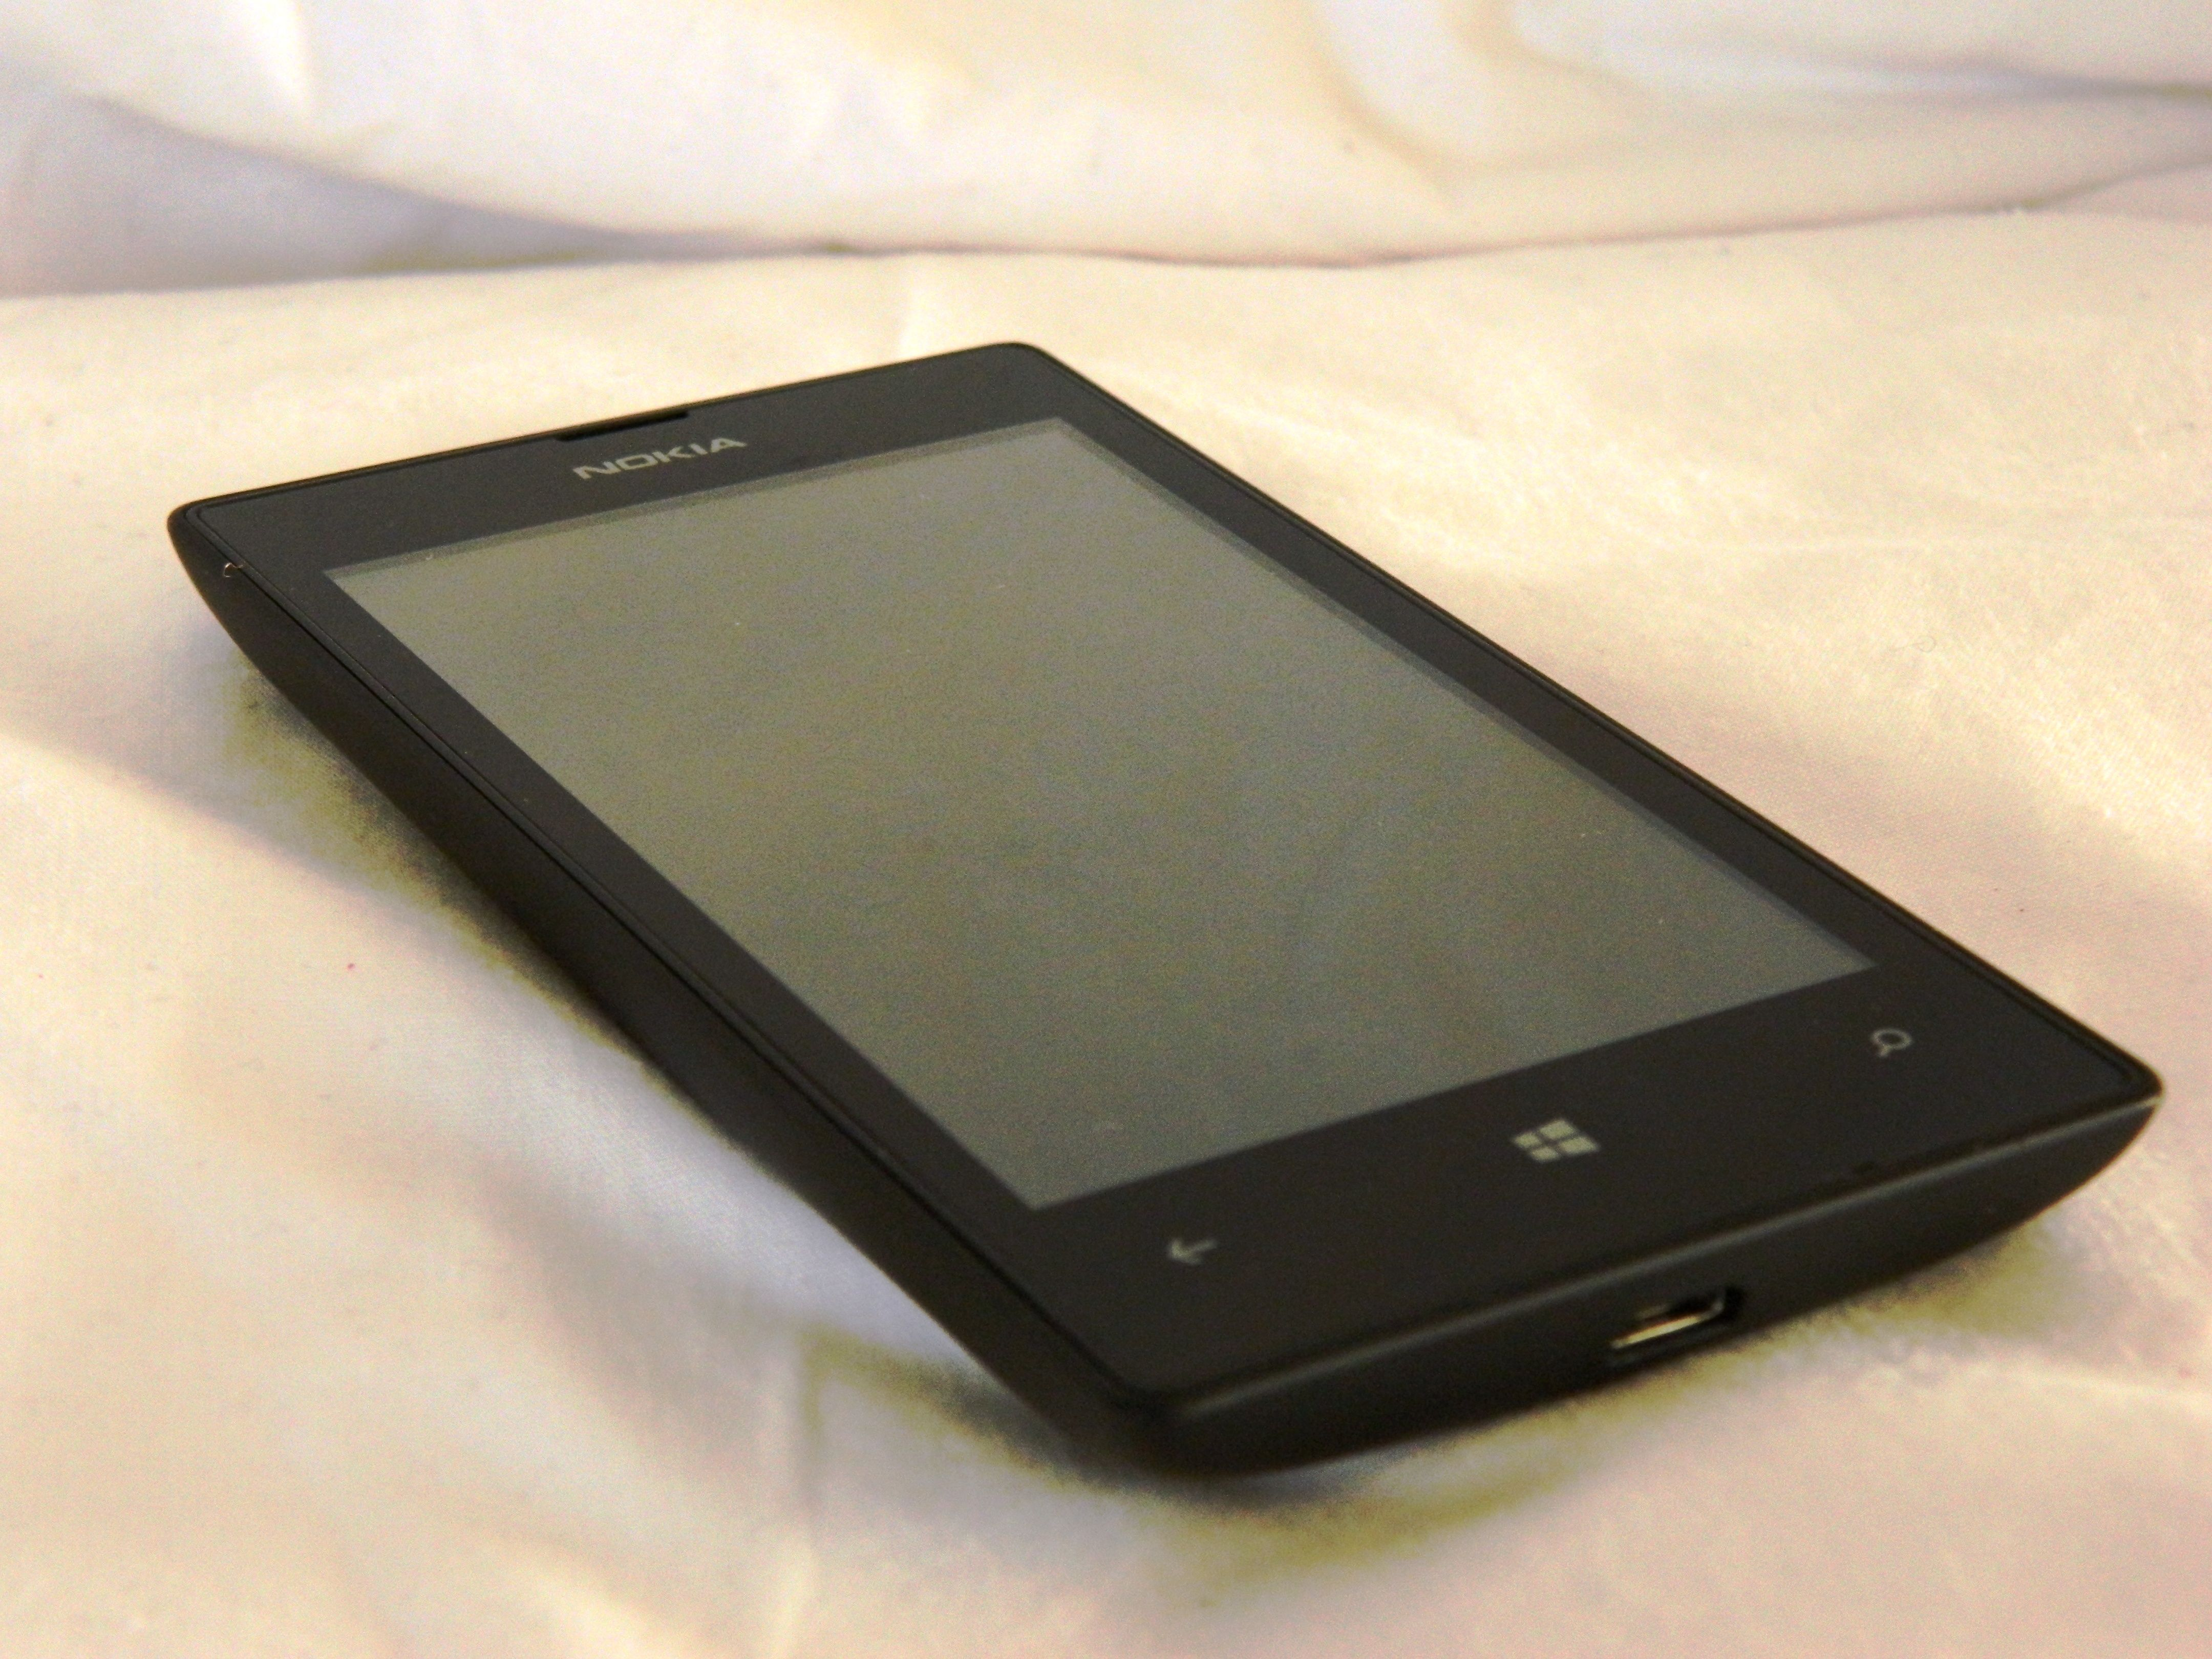 Selling this Lumia 520. A great affordable smartphone. With Windows 8.1 installed. See more here: http://www.ebay.com/itm/151573475848?ssPageName=STRK:MESELX:IT&_trksid=p3984.m1555.l2649  See it here: http://youtu.be/ndEha9MzPBs